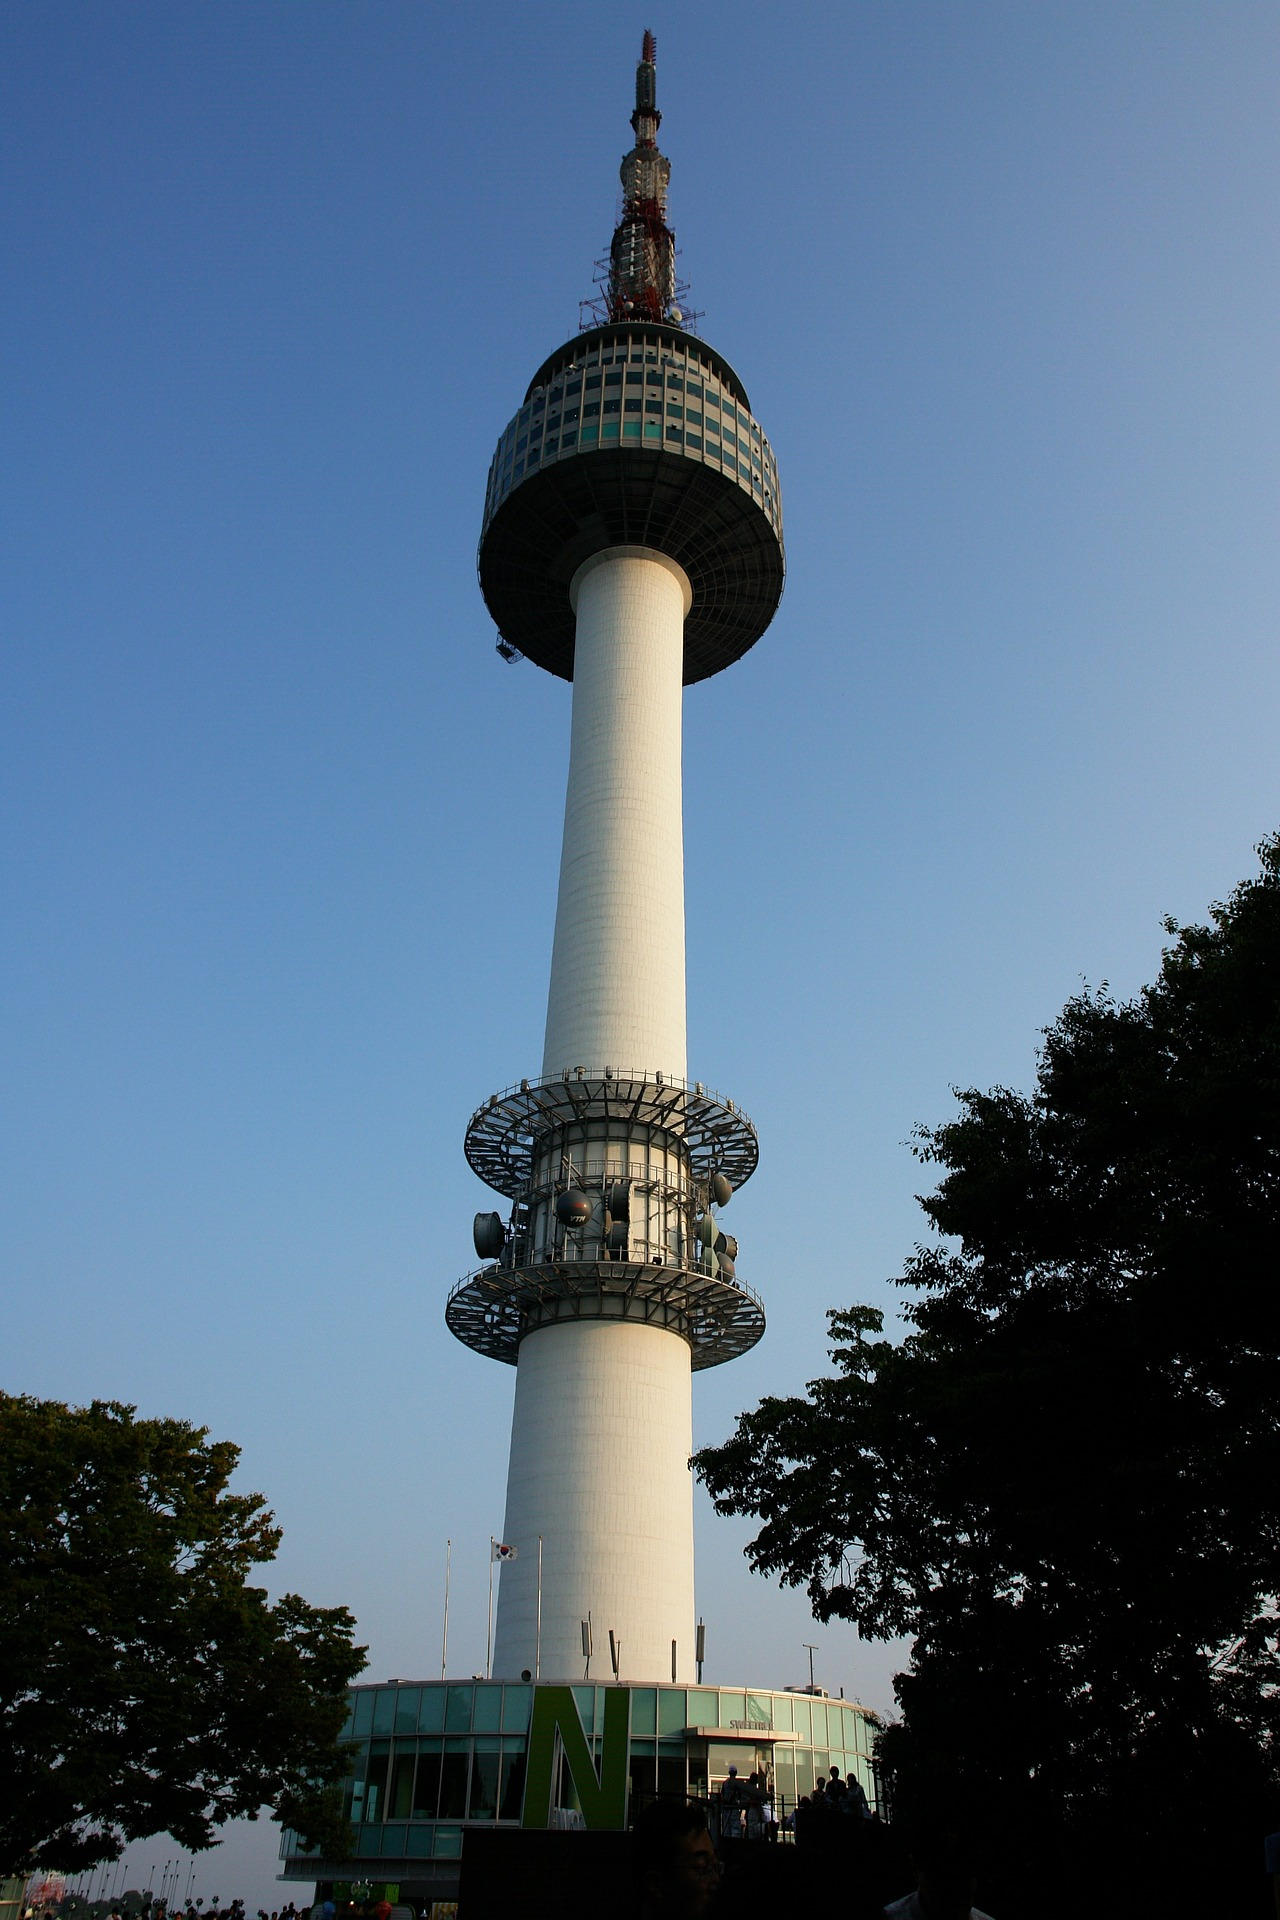 The N Seoul Tower (Namsan Tower), Seoul, South Korea